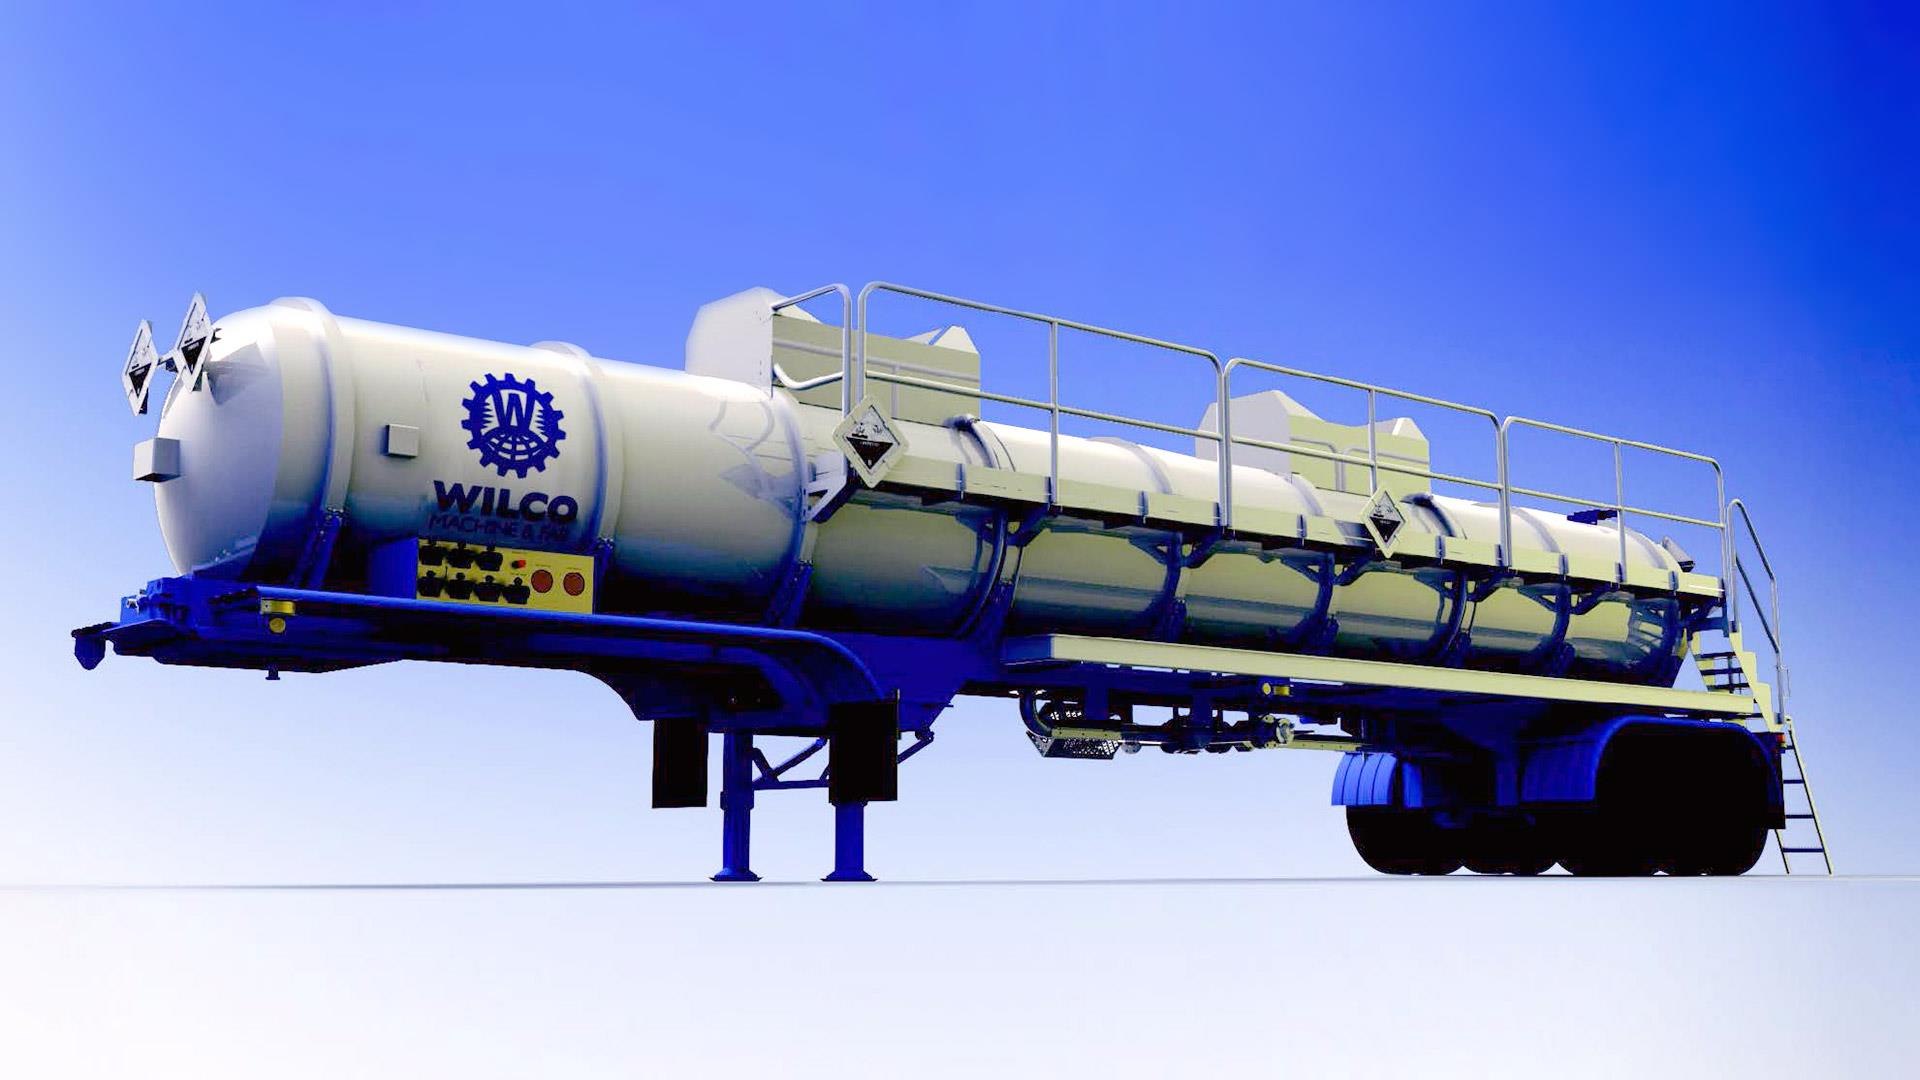 Render of Wilco Friction Reducer Transport Trailer